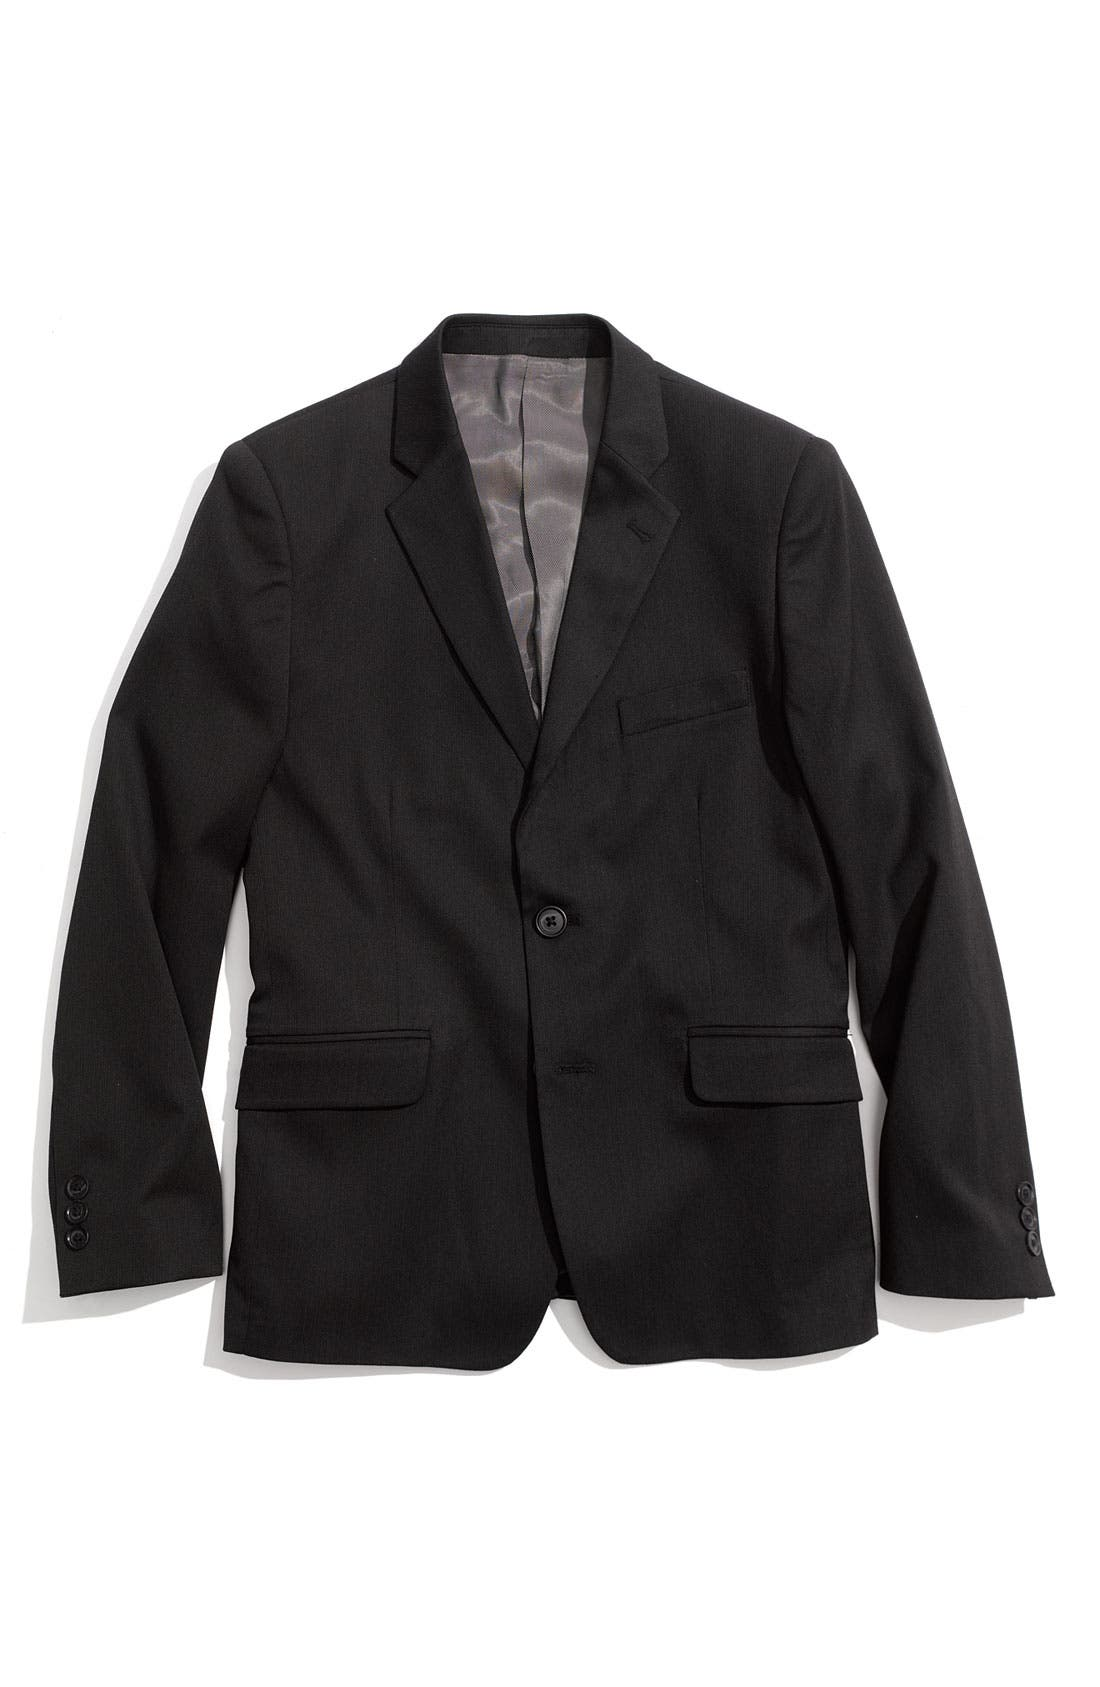 Alternate Image 1 Selected - C2 by Calibrate Slim Fit Jacket (Big Boys)